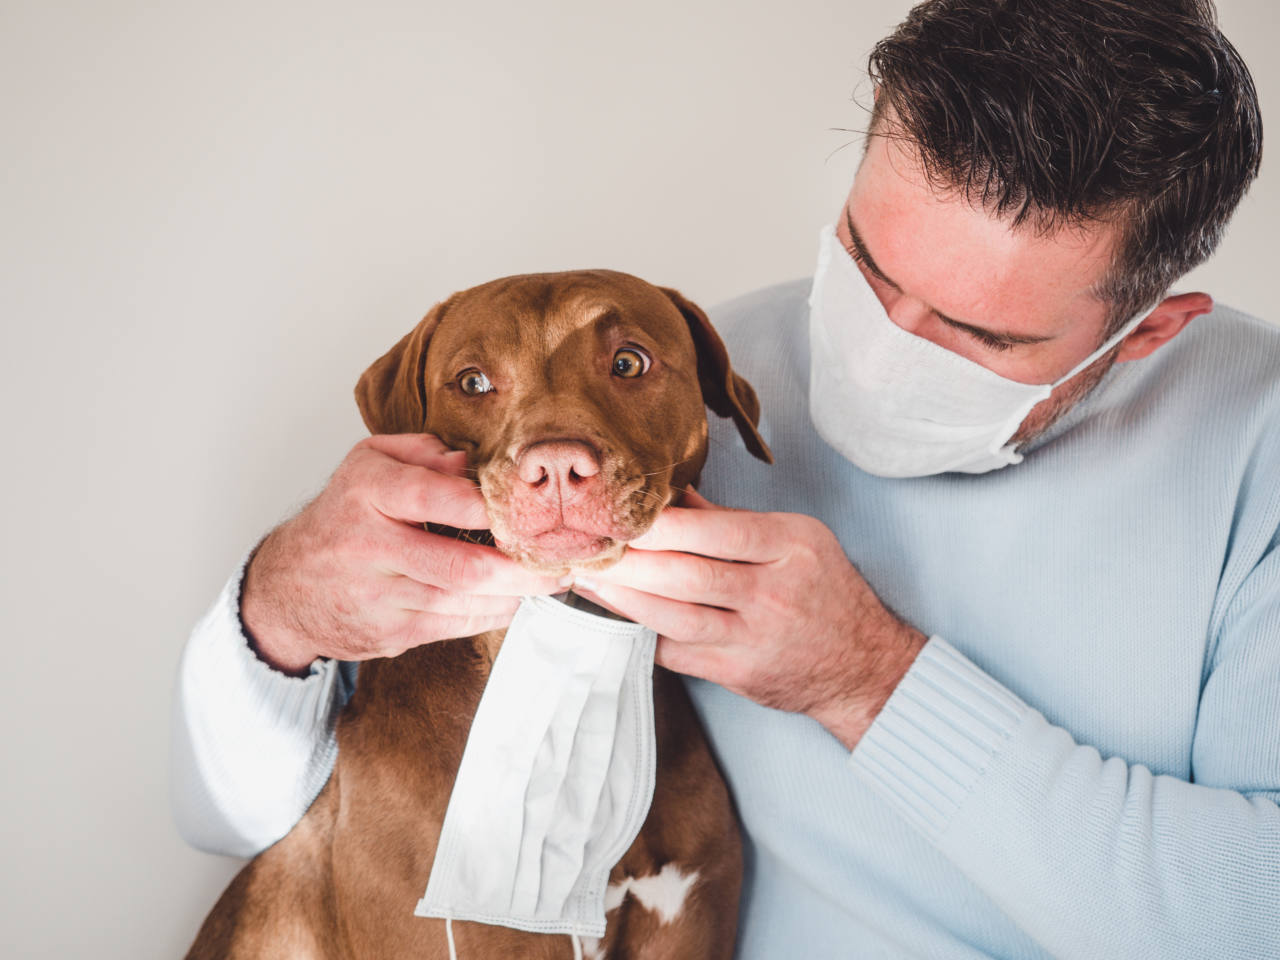 Sweet, pretty puppy of chocolate color and his owner, holding a medical mask. Closeup, indoors. Day light. Concept of care, education, obedience training, raising pets